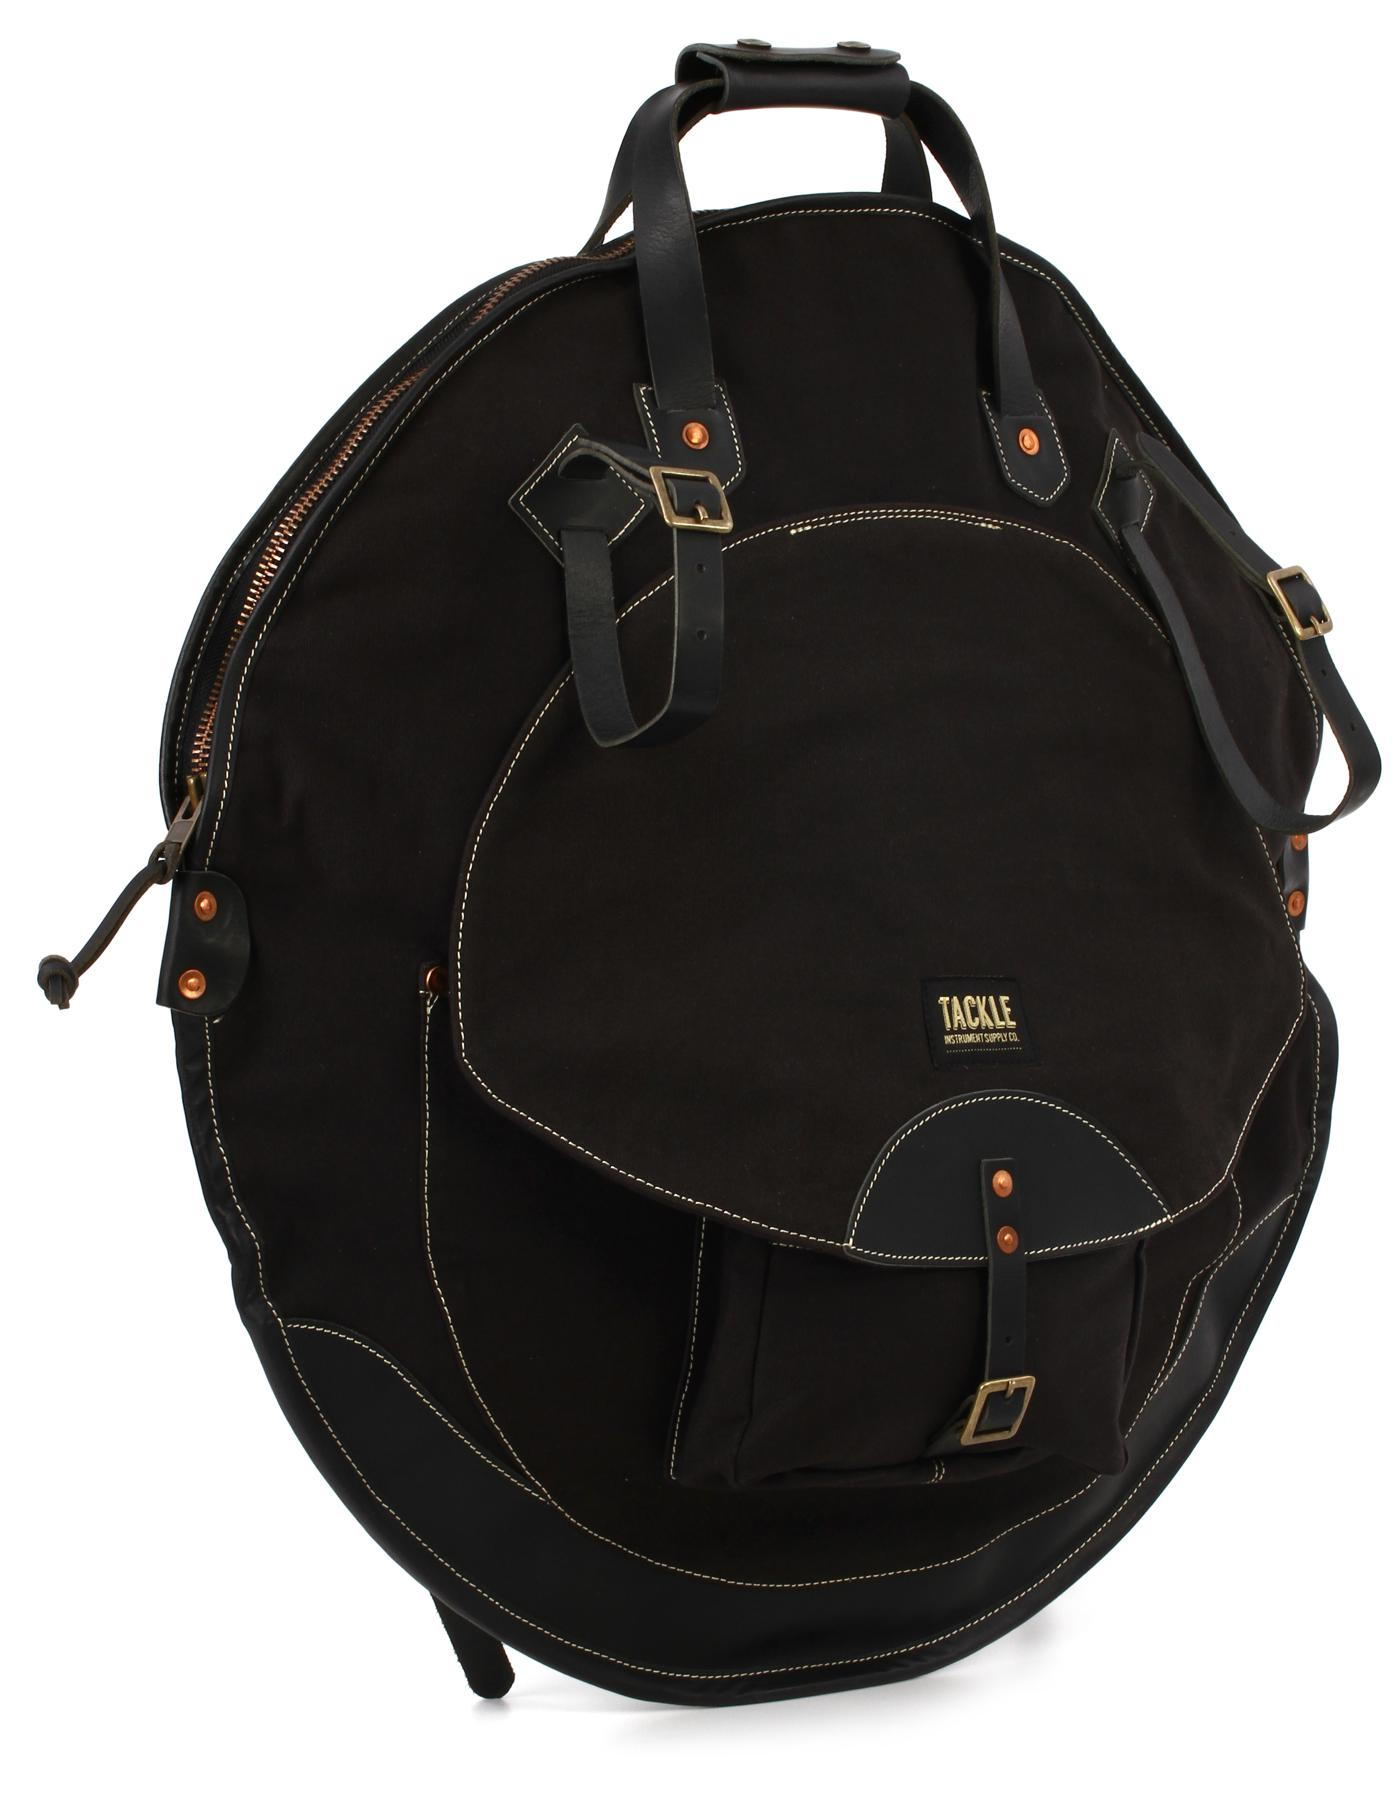 Tackle Cymbal Backpack 24""